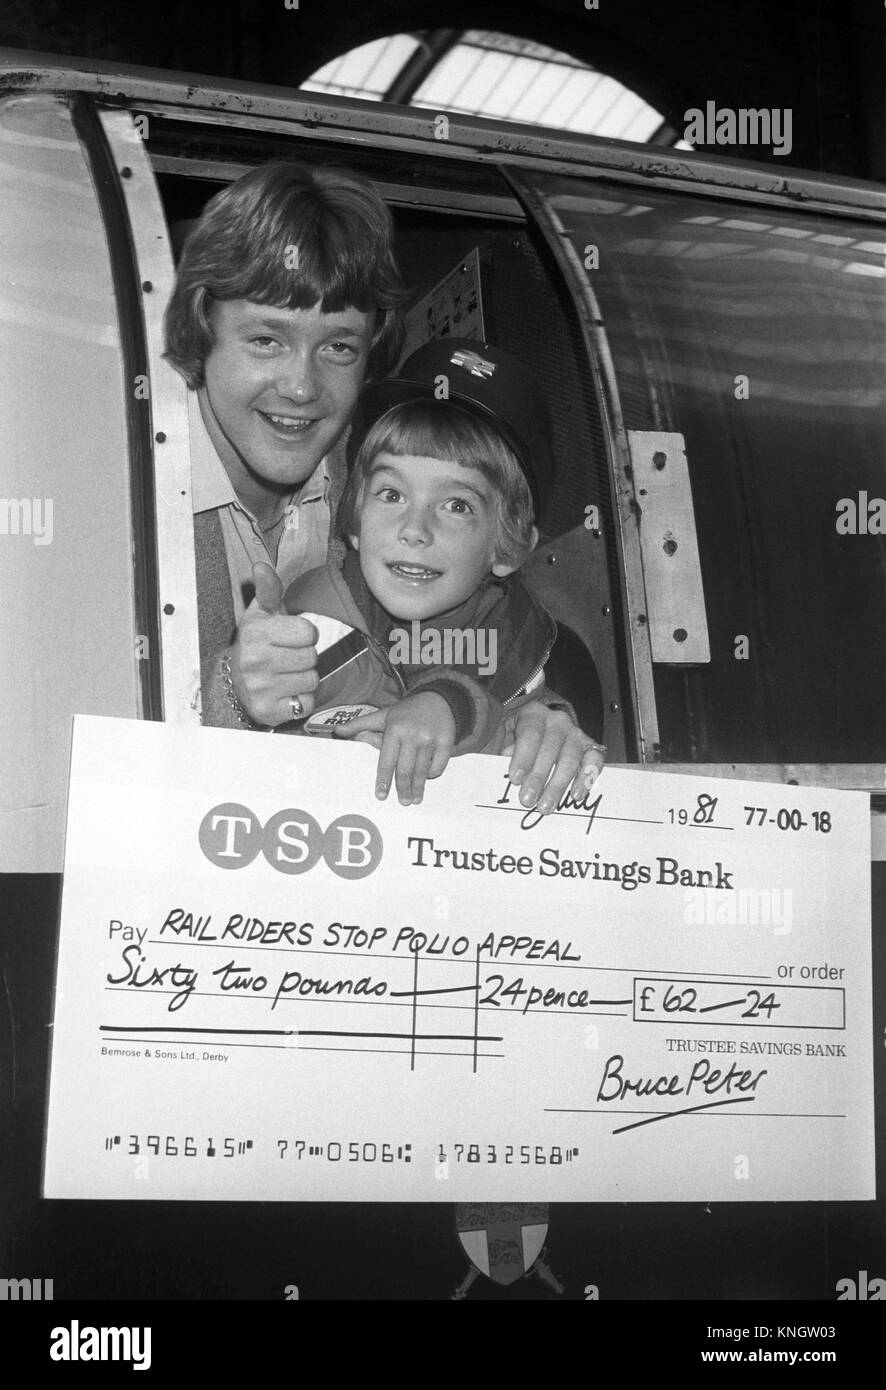 Bruce Peter (r), the seven-year-old from Airdrie, Scotland, hands children's TV star Keith Chegwin a cheque - Stock Image